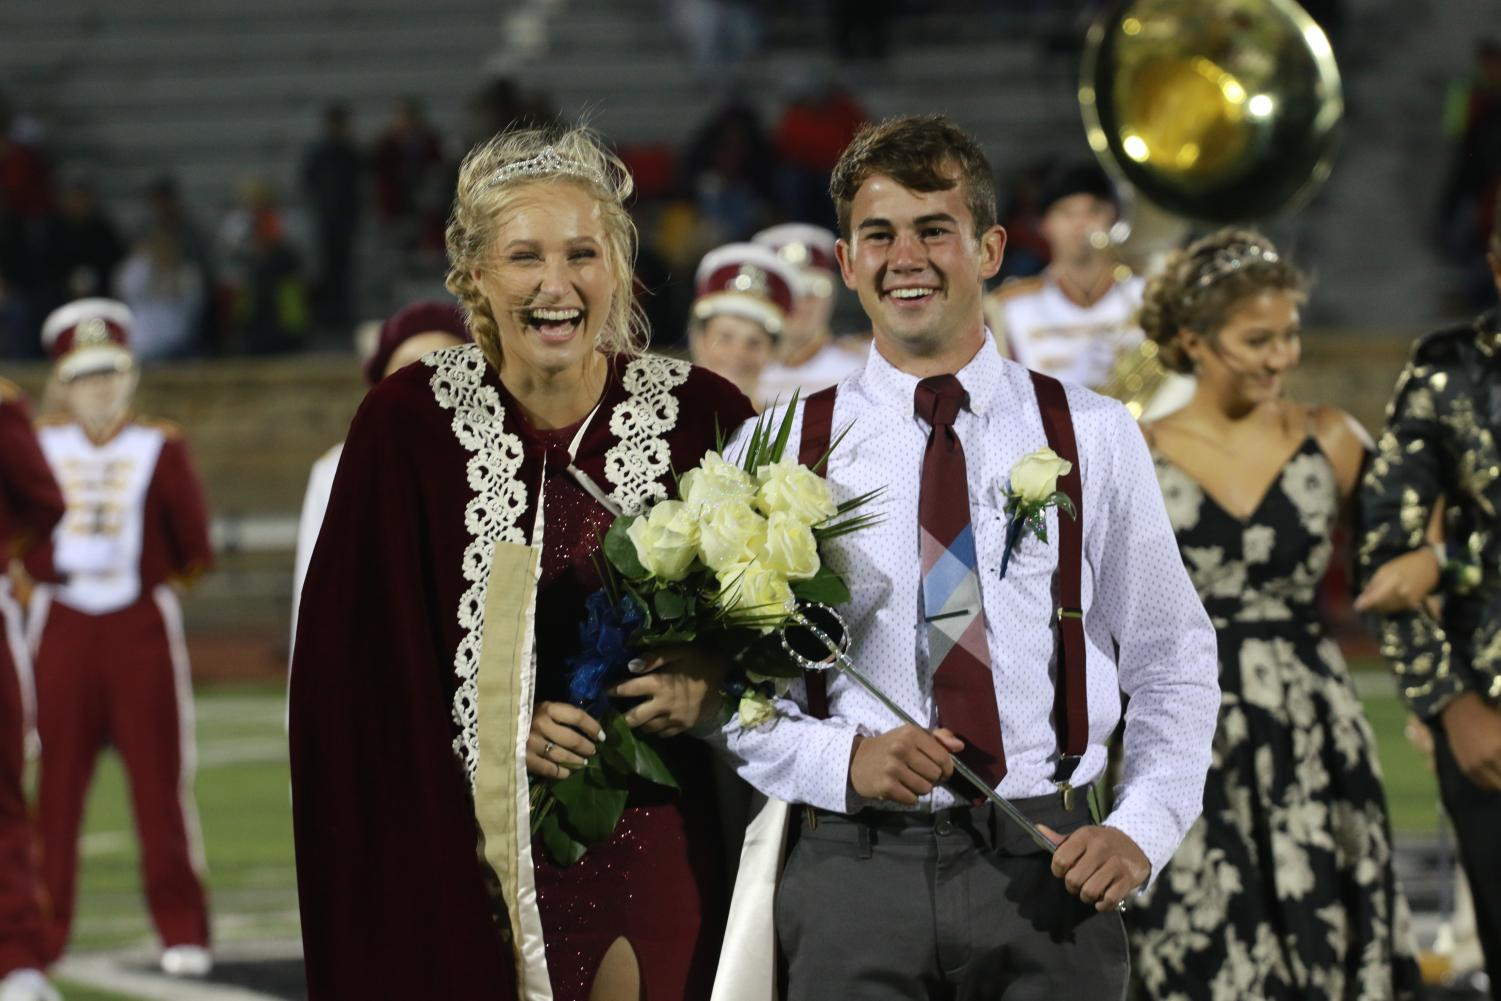 Seniors Brittani Park and Peyton Thorell are crowned as the homecoming king and queen.